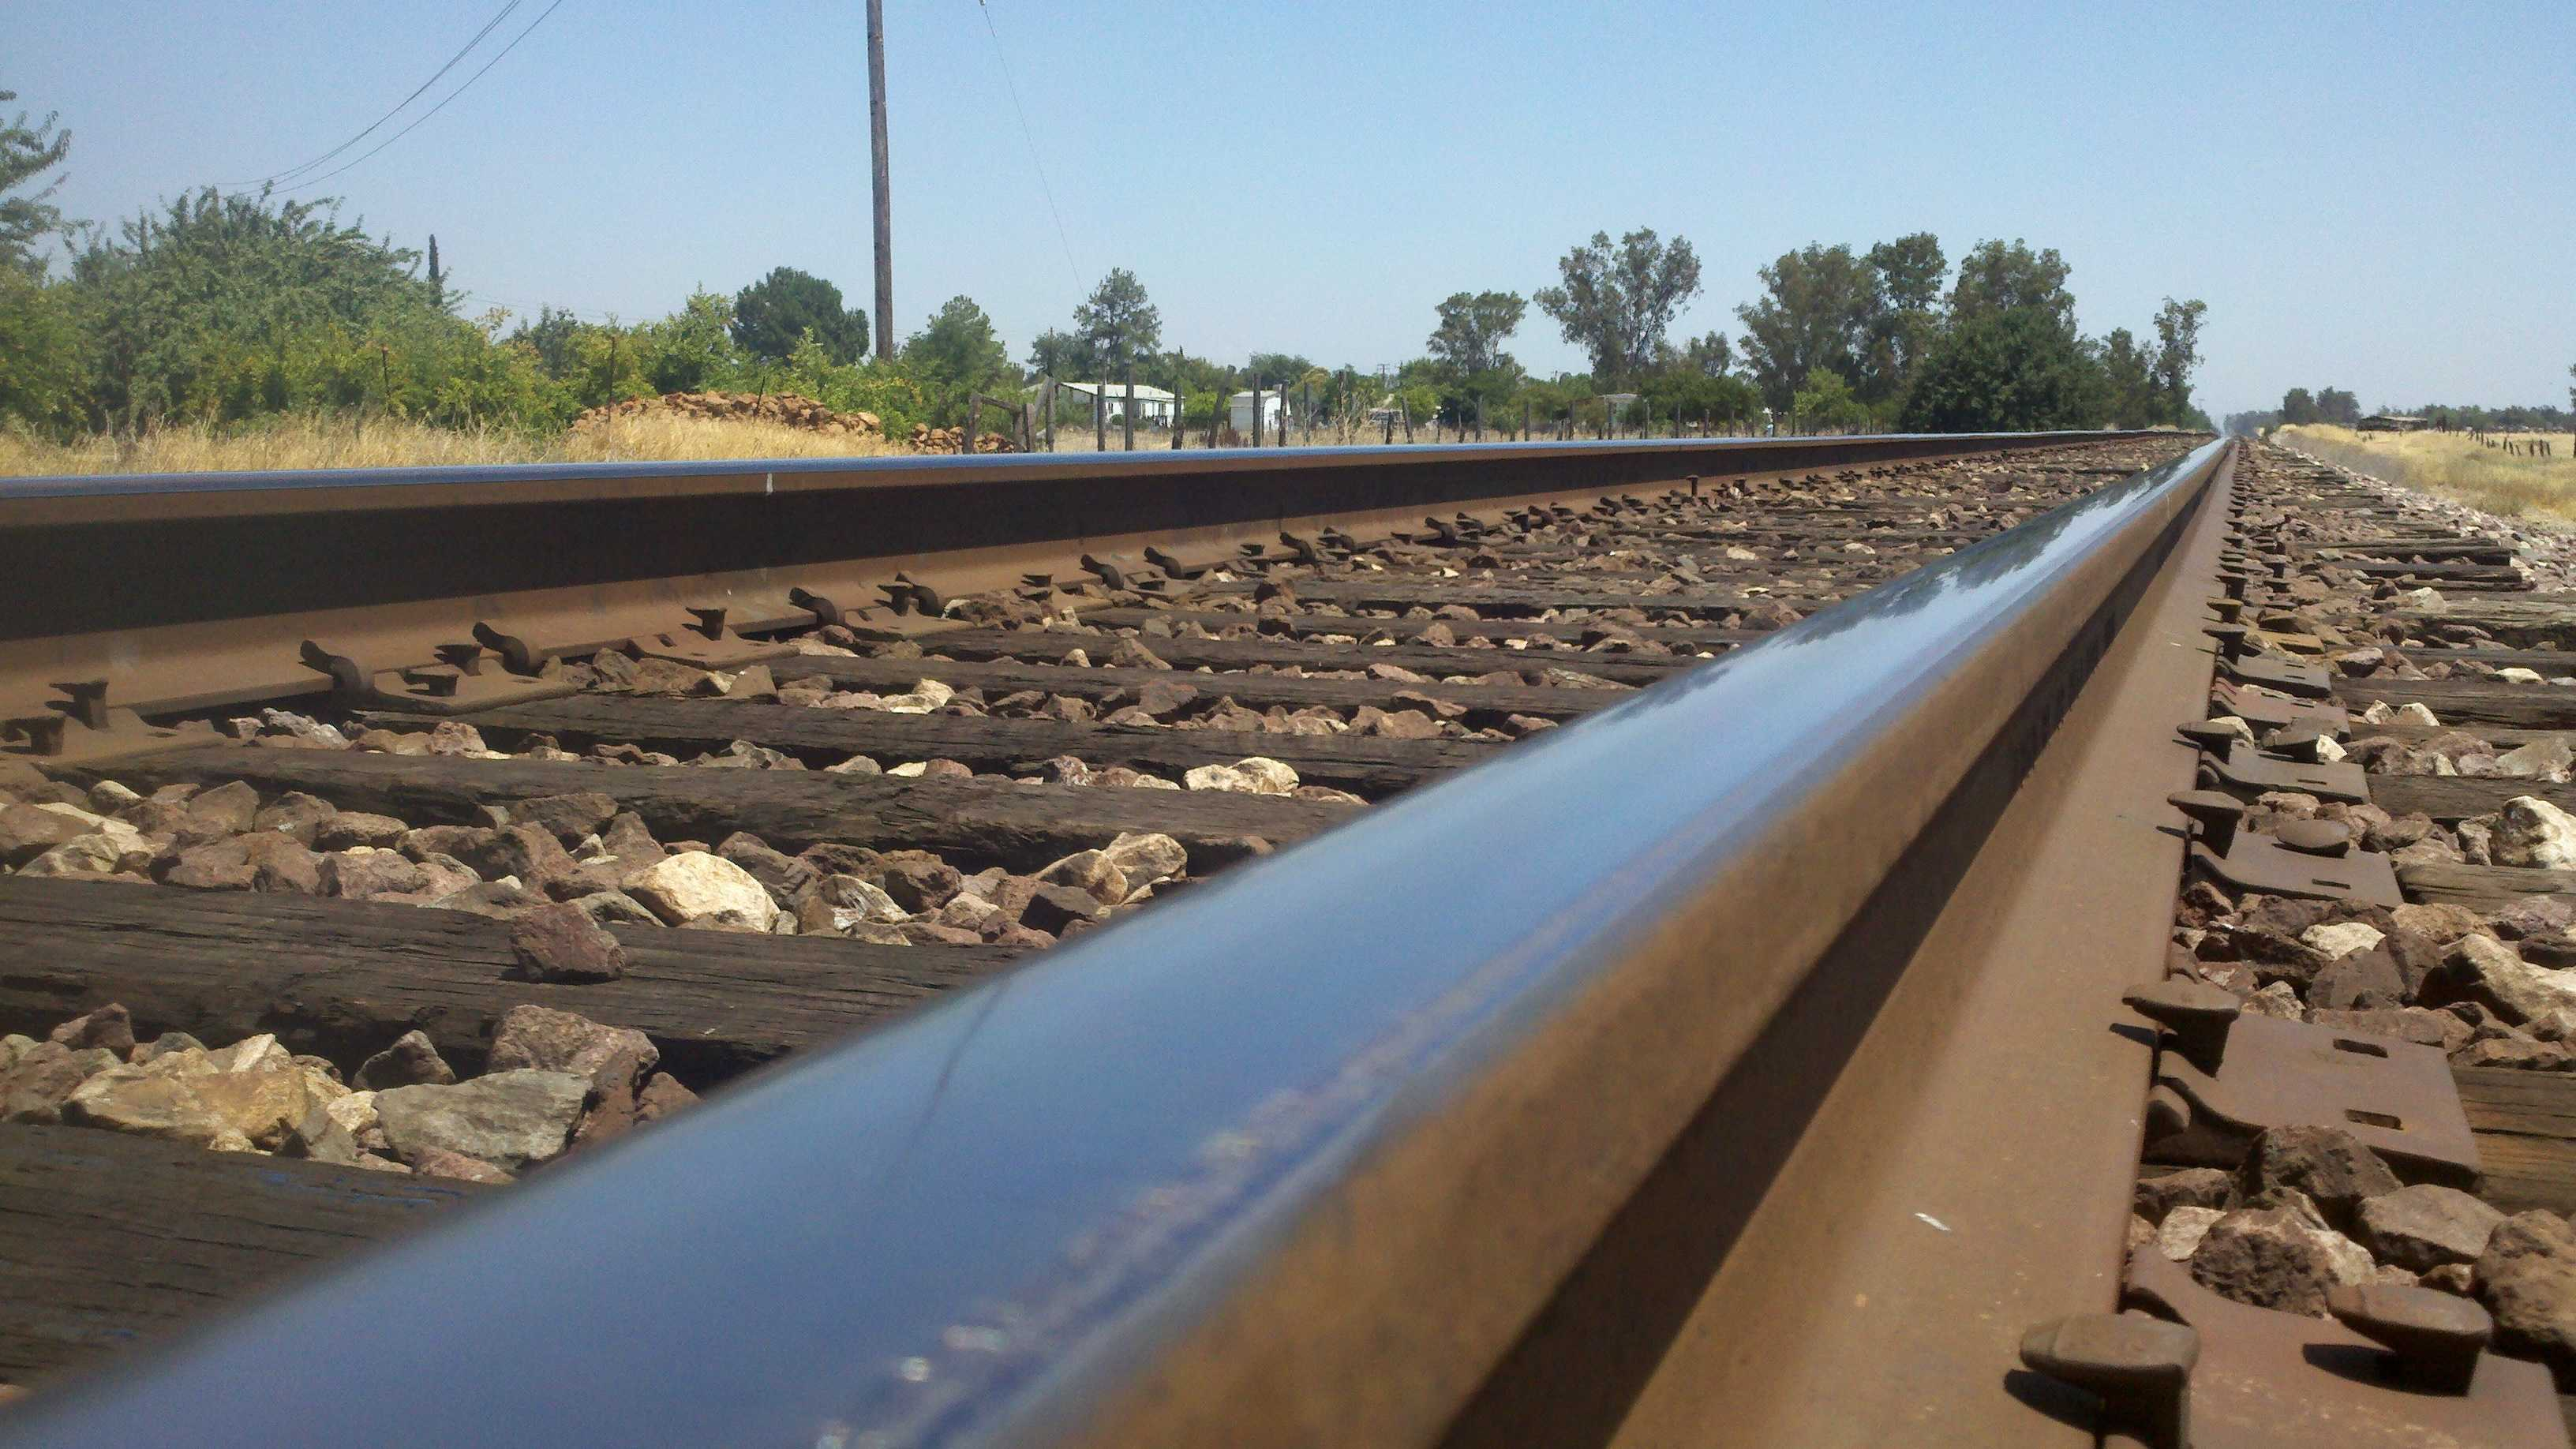 The high-speed rail line would parallel this existing line through Madera Country, but travel at four times the speed of Amtrak trains.